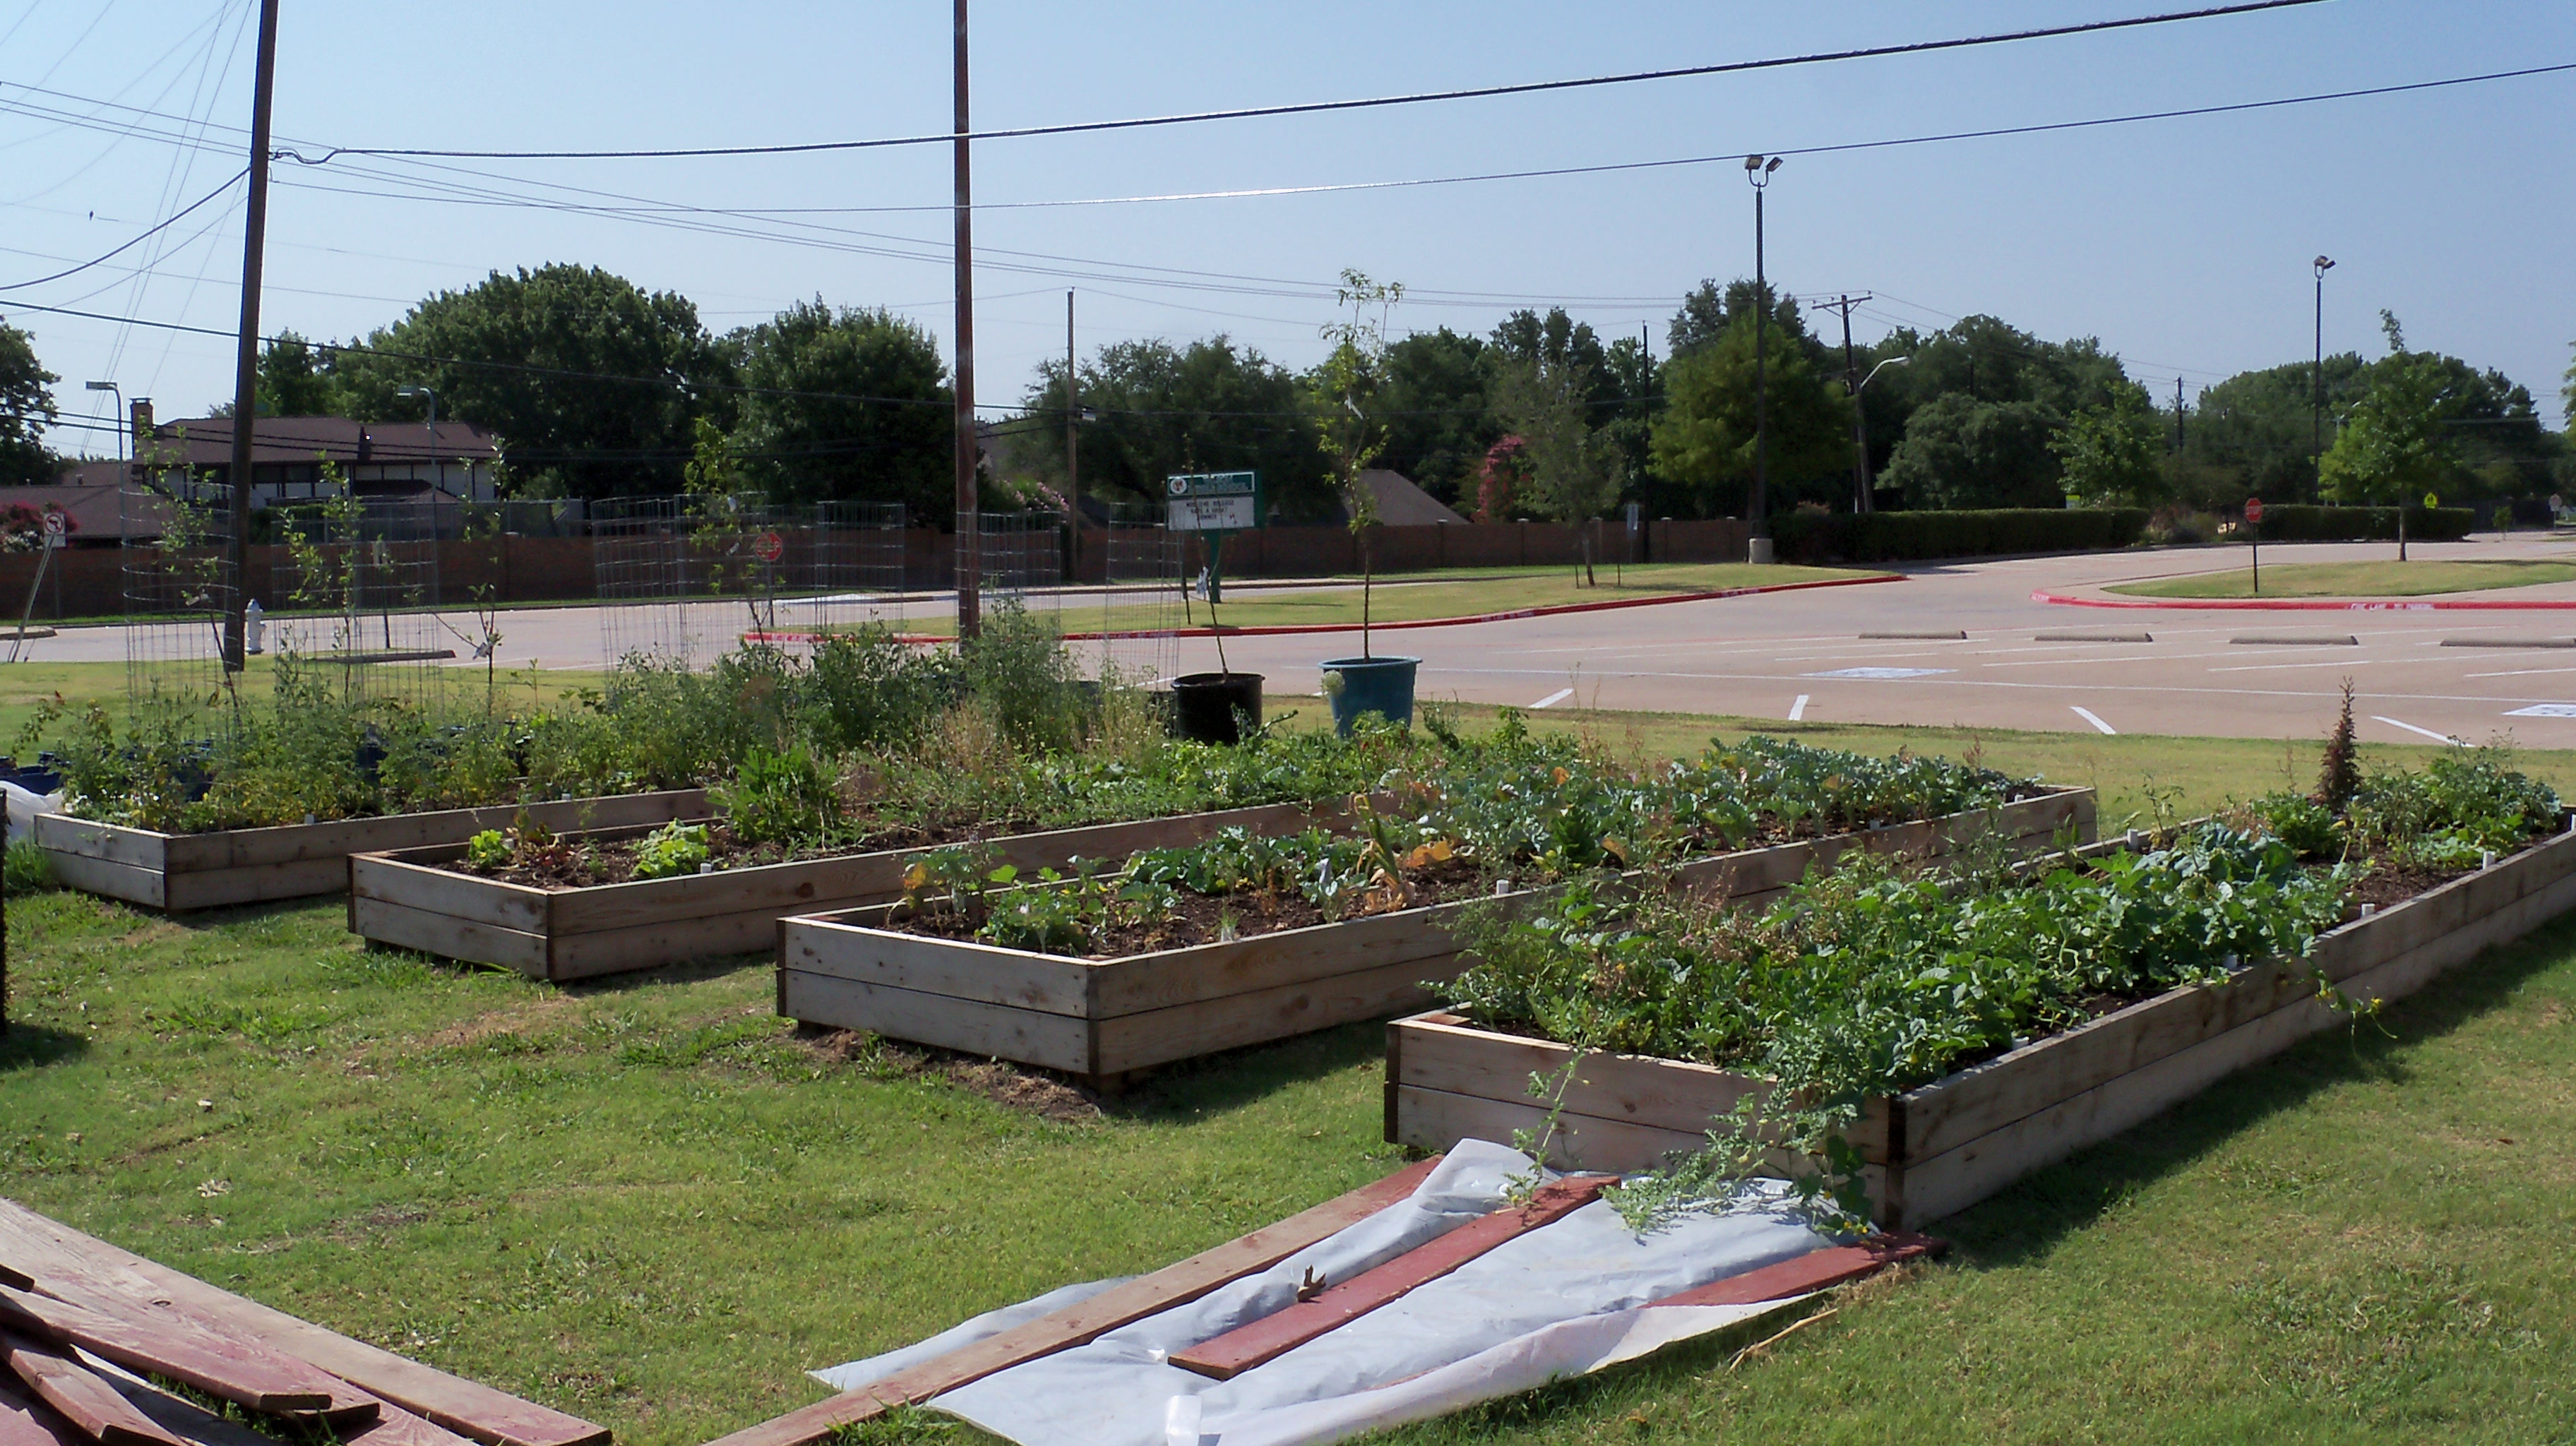 School vegetable gardens - A School Vegetable Garden Can Be A Wonderful Outdoor Classroom For Studying Natural Science Or Just Hanging Out Writing A Story